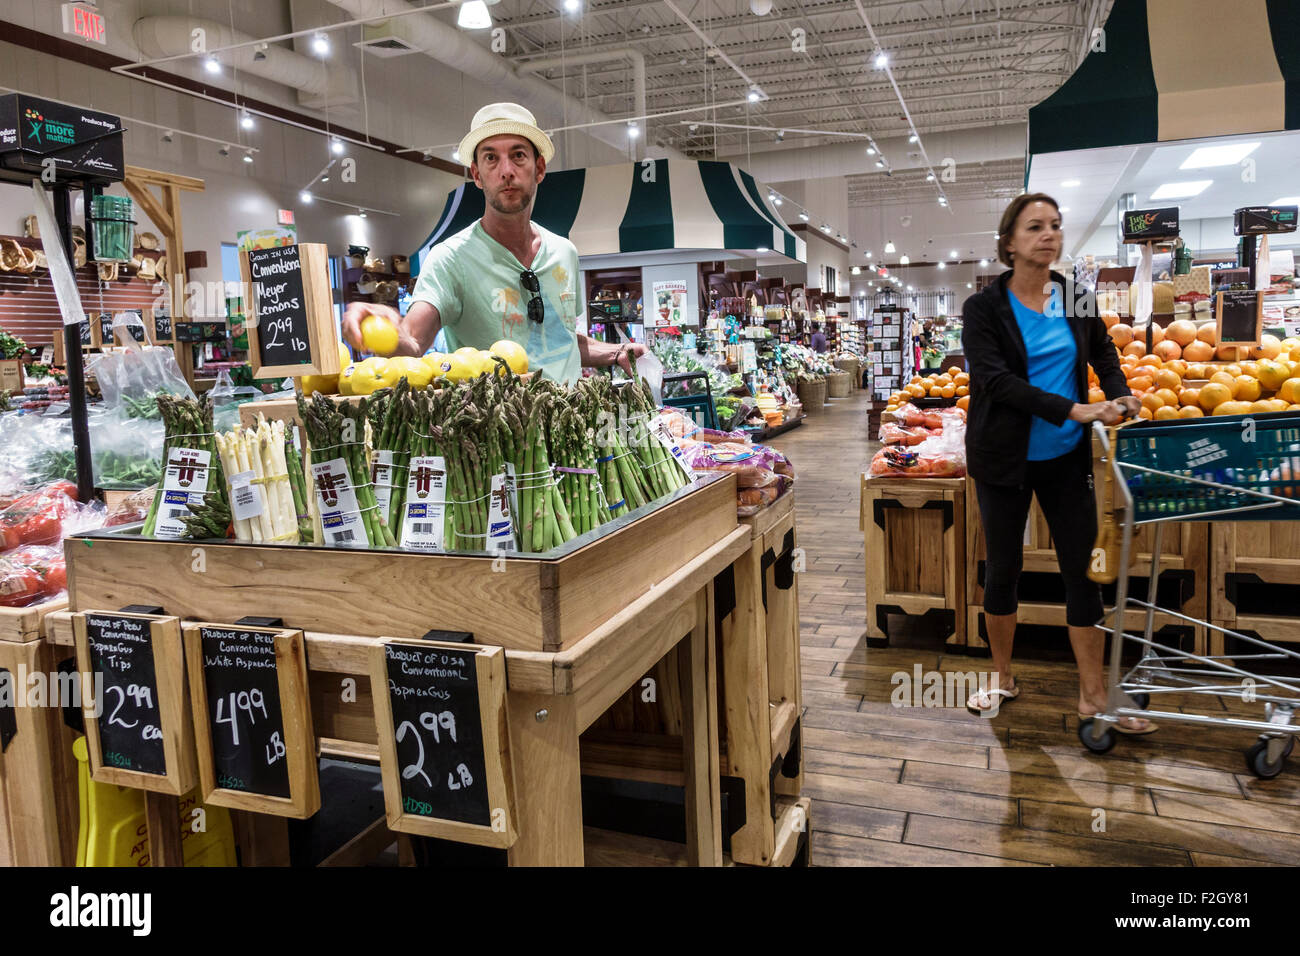 Florida Delray Beach The Fresh Market grocery store supermarket food shopping sale inside display shelves - Stock Image